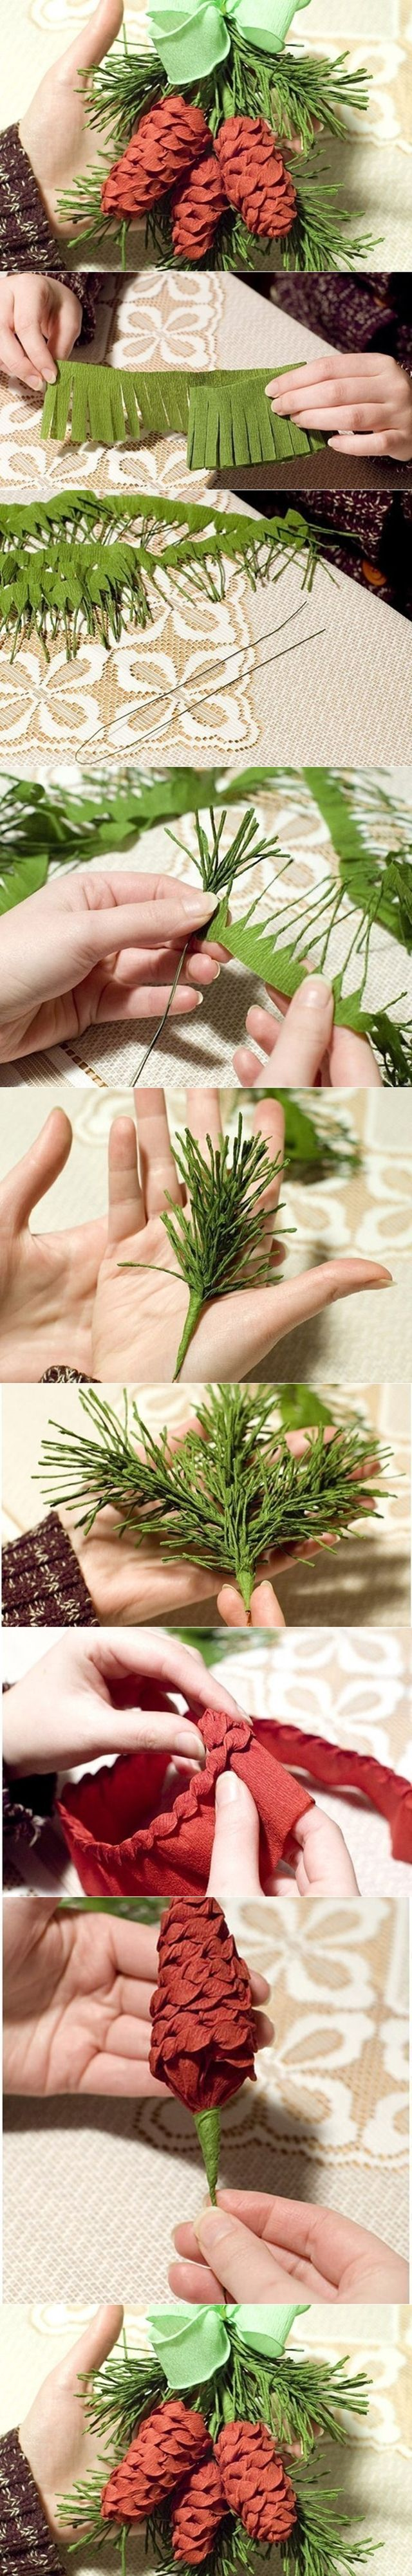 DIY Crepe Paper Pine Cone with Fir Leaf | www.FabArtDIY.com LIKE Us on Facebook ==> https://www.facebook.com/FabArtDIY